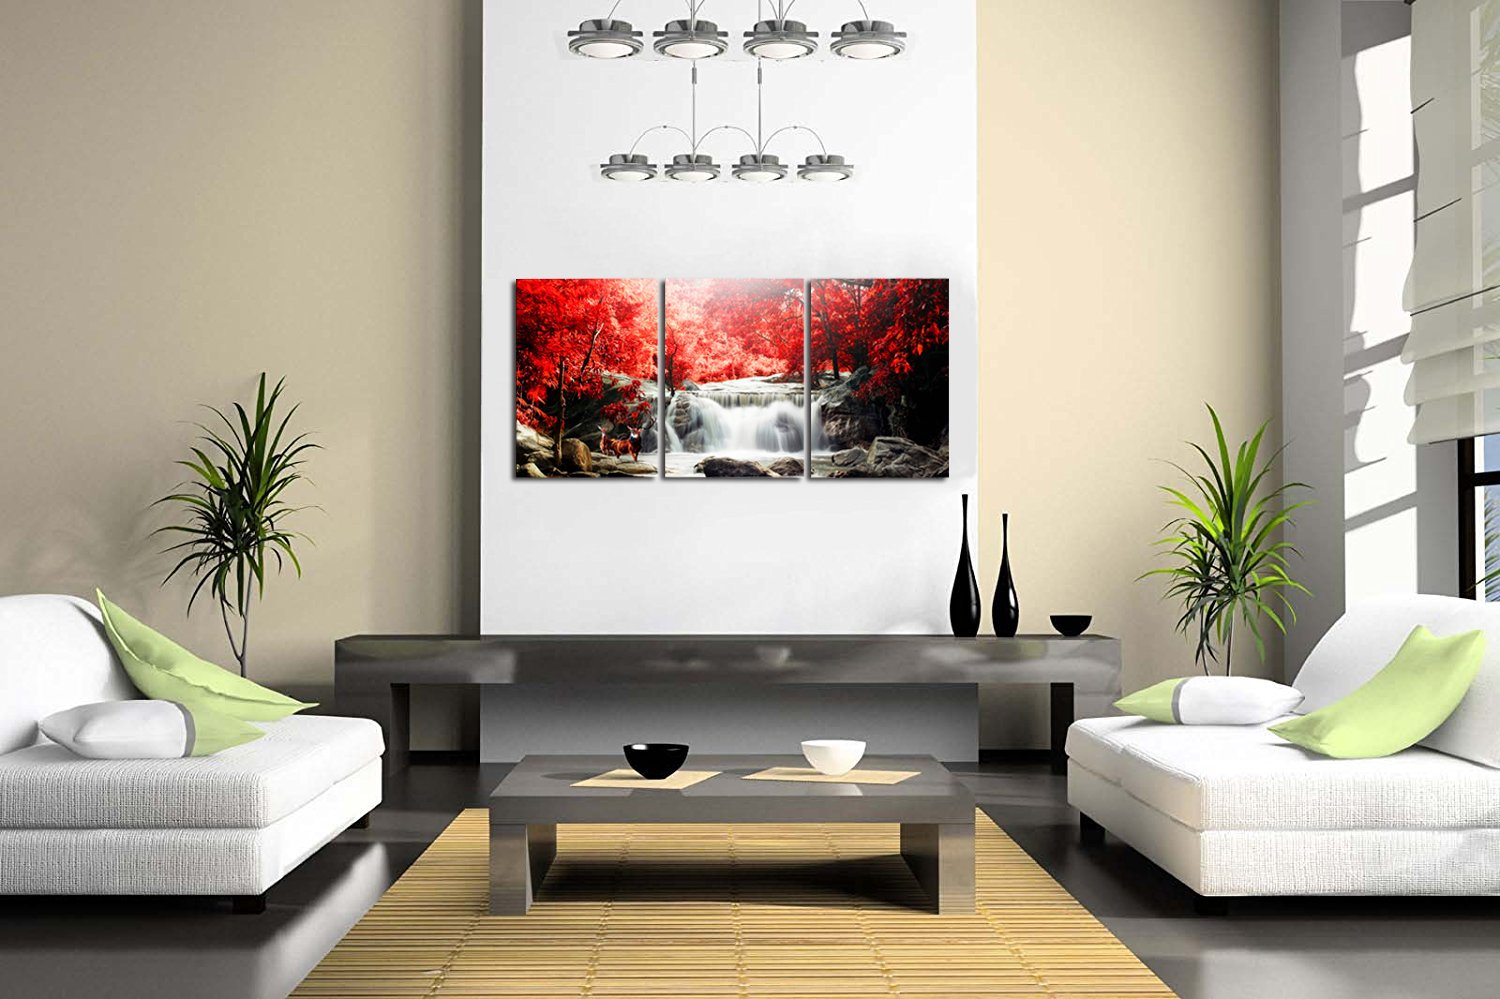 Amazon.com: ModeArt Waterfall Wall Art Artwork Oil Painting For ...